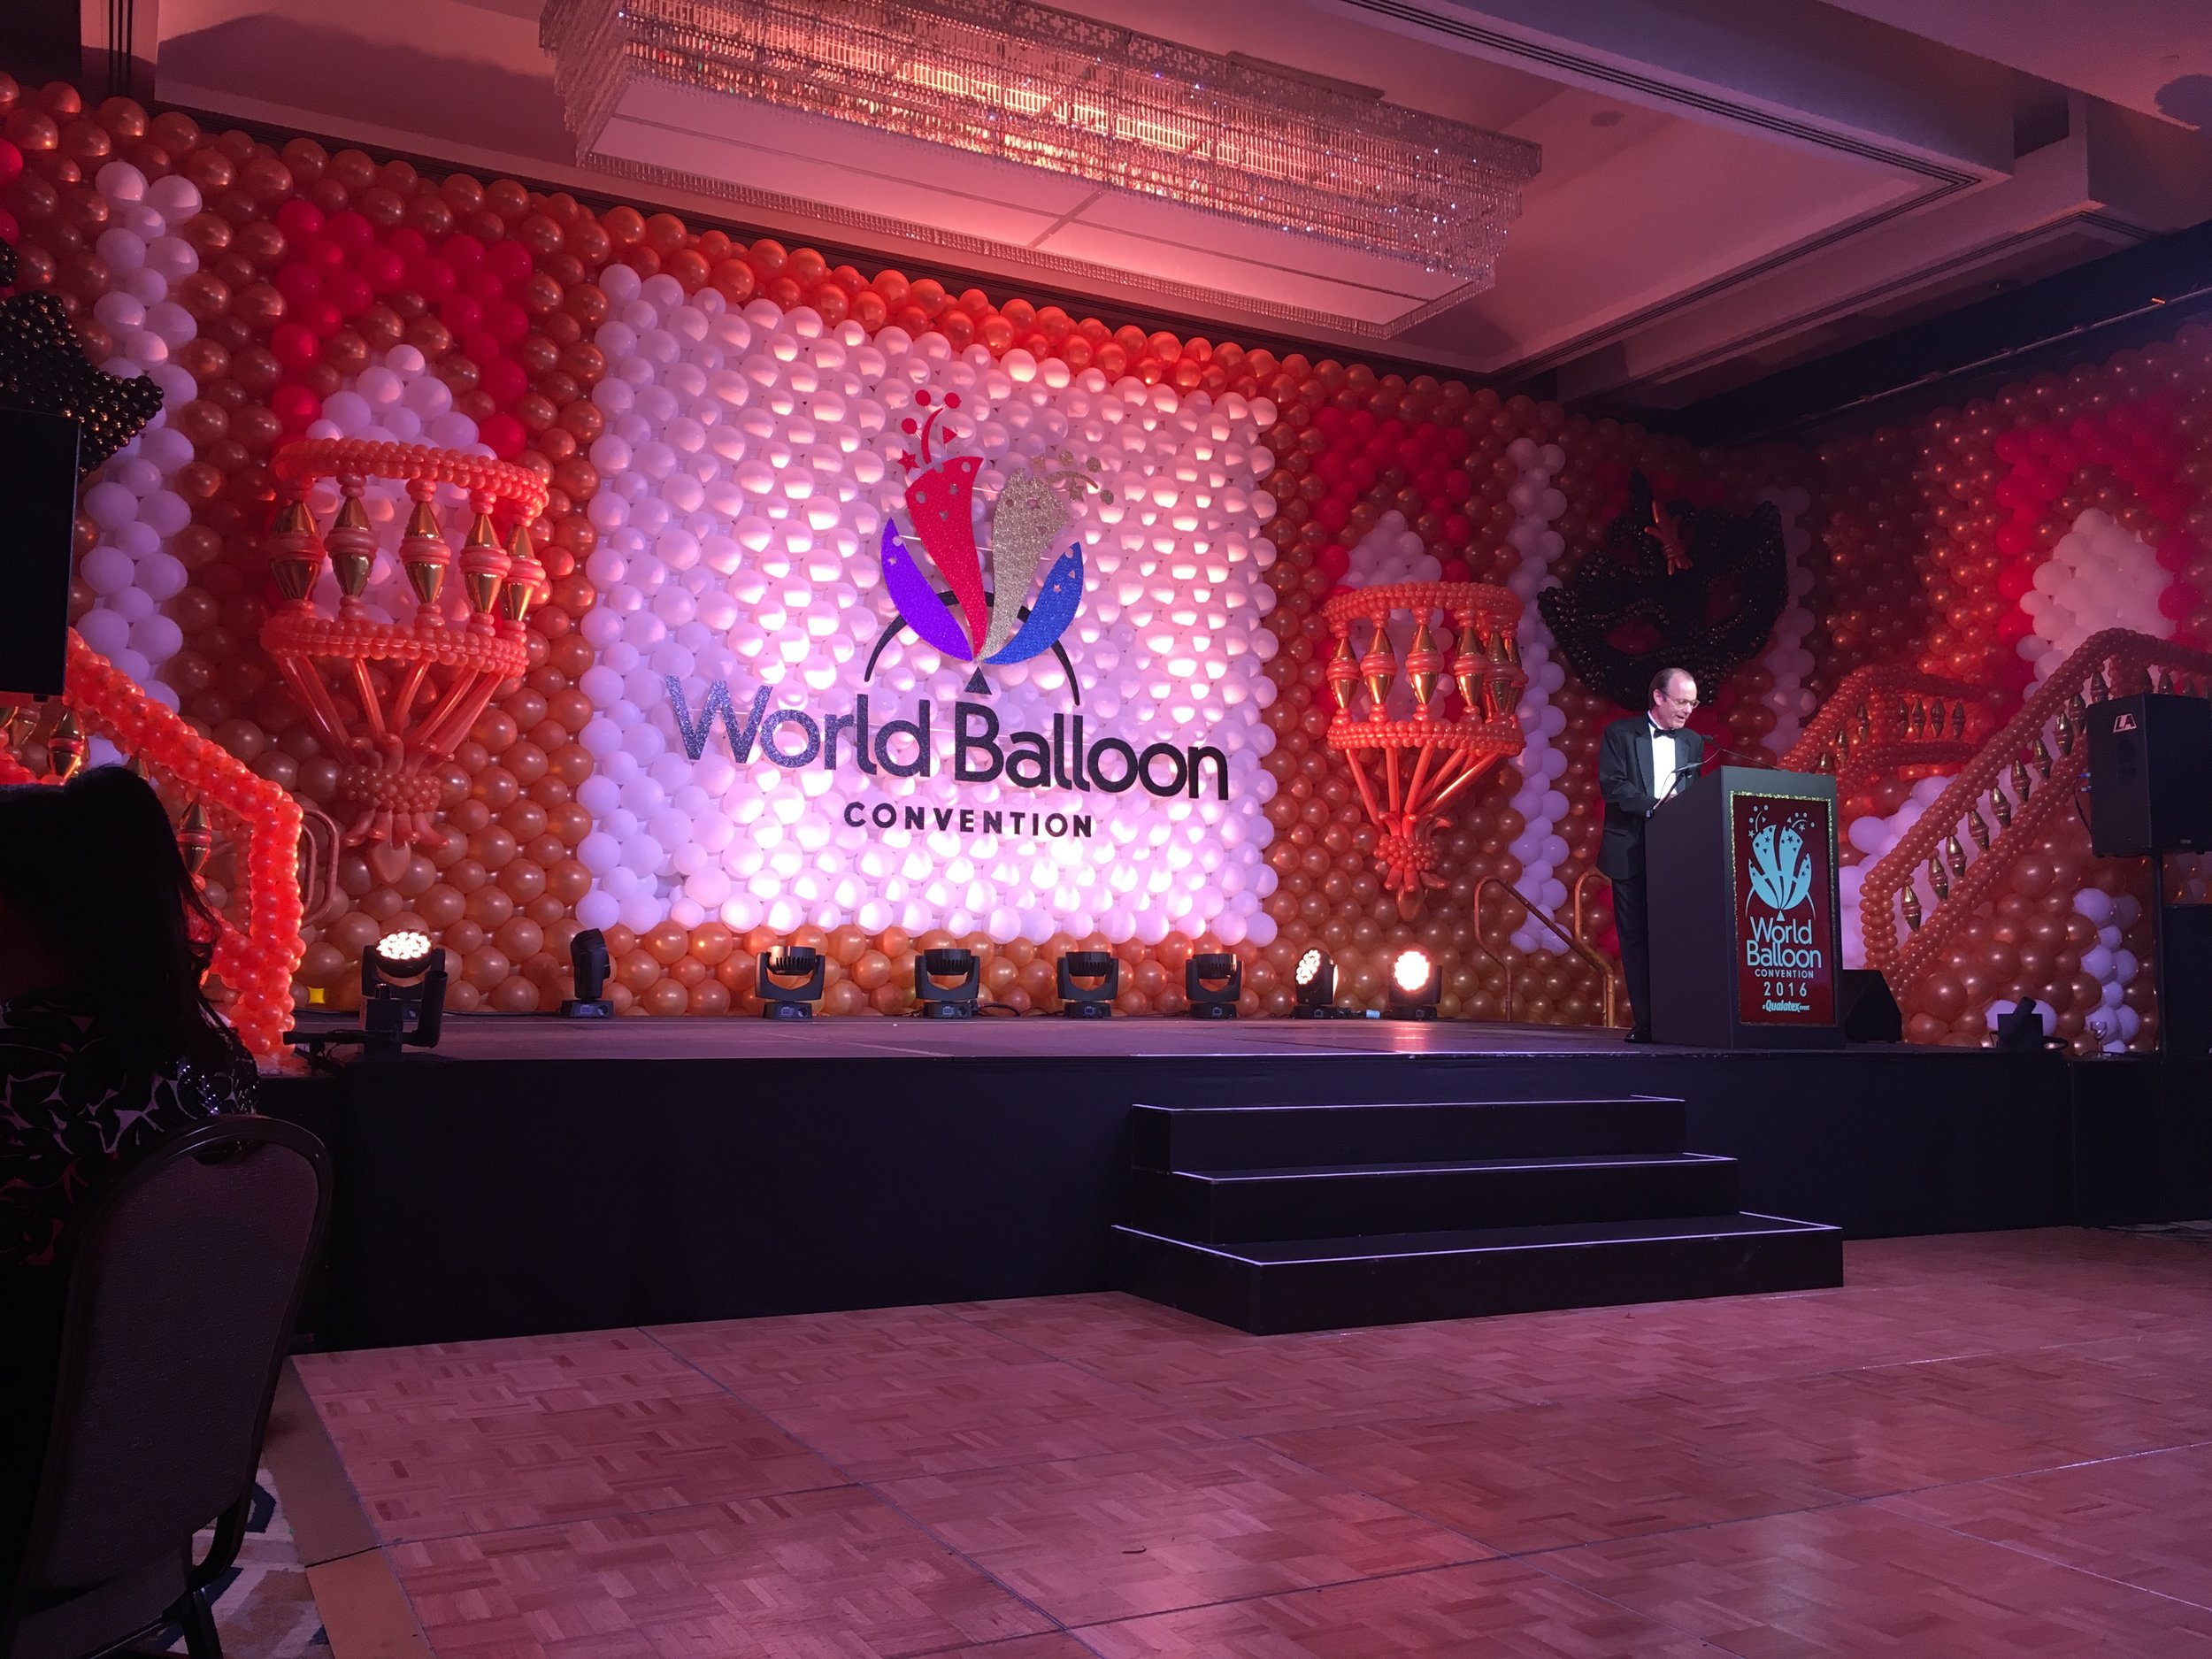 Grand Gala Stage...yes, that is all balloons!